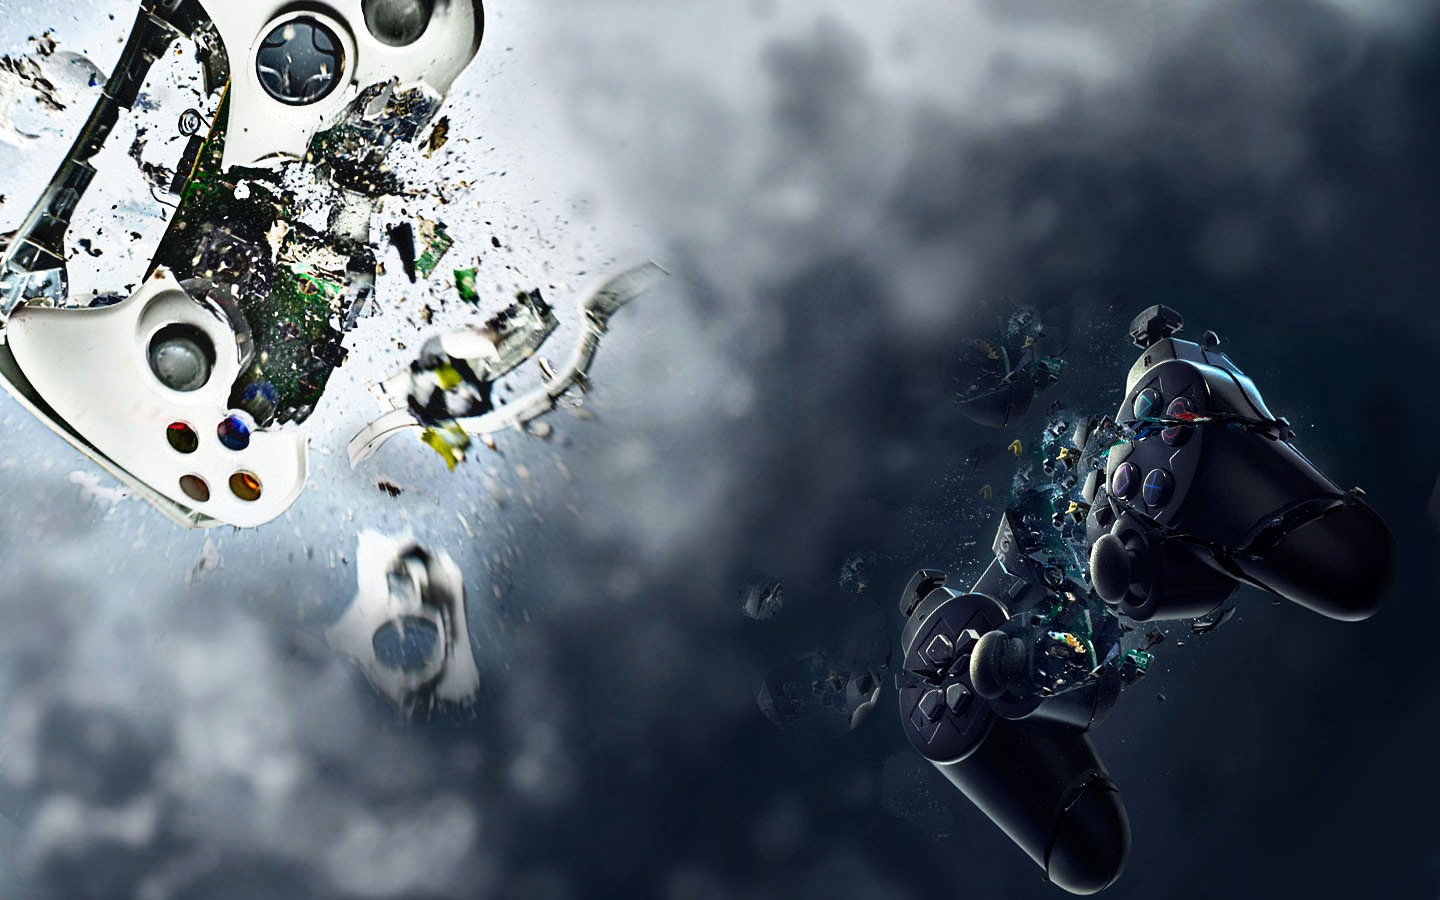 Gamer Thug Controller Hd Wallpapers: Cameron's Gaming Insight